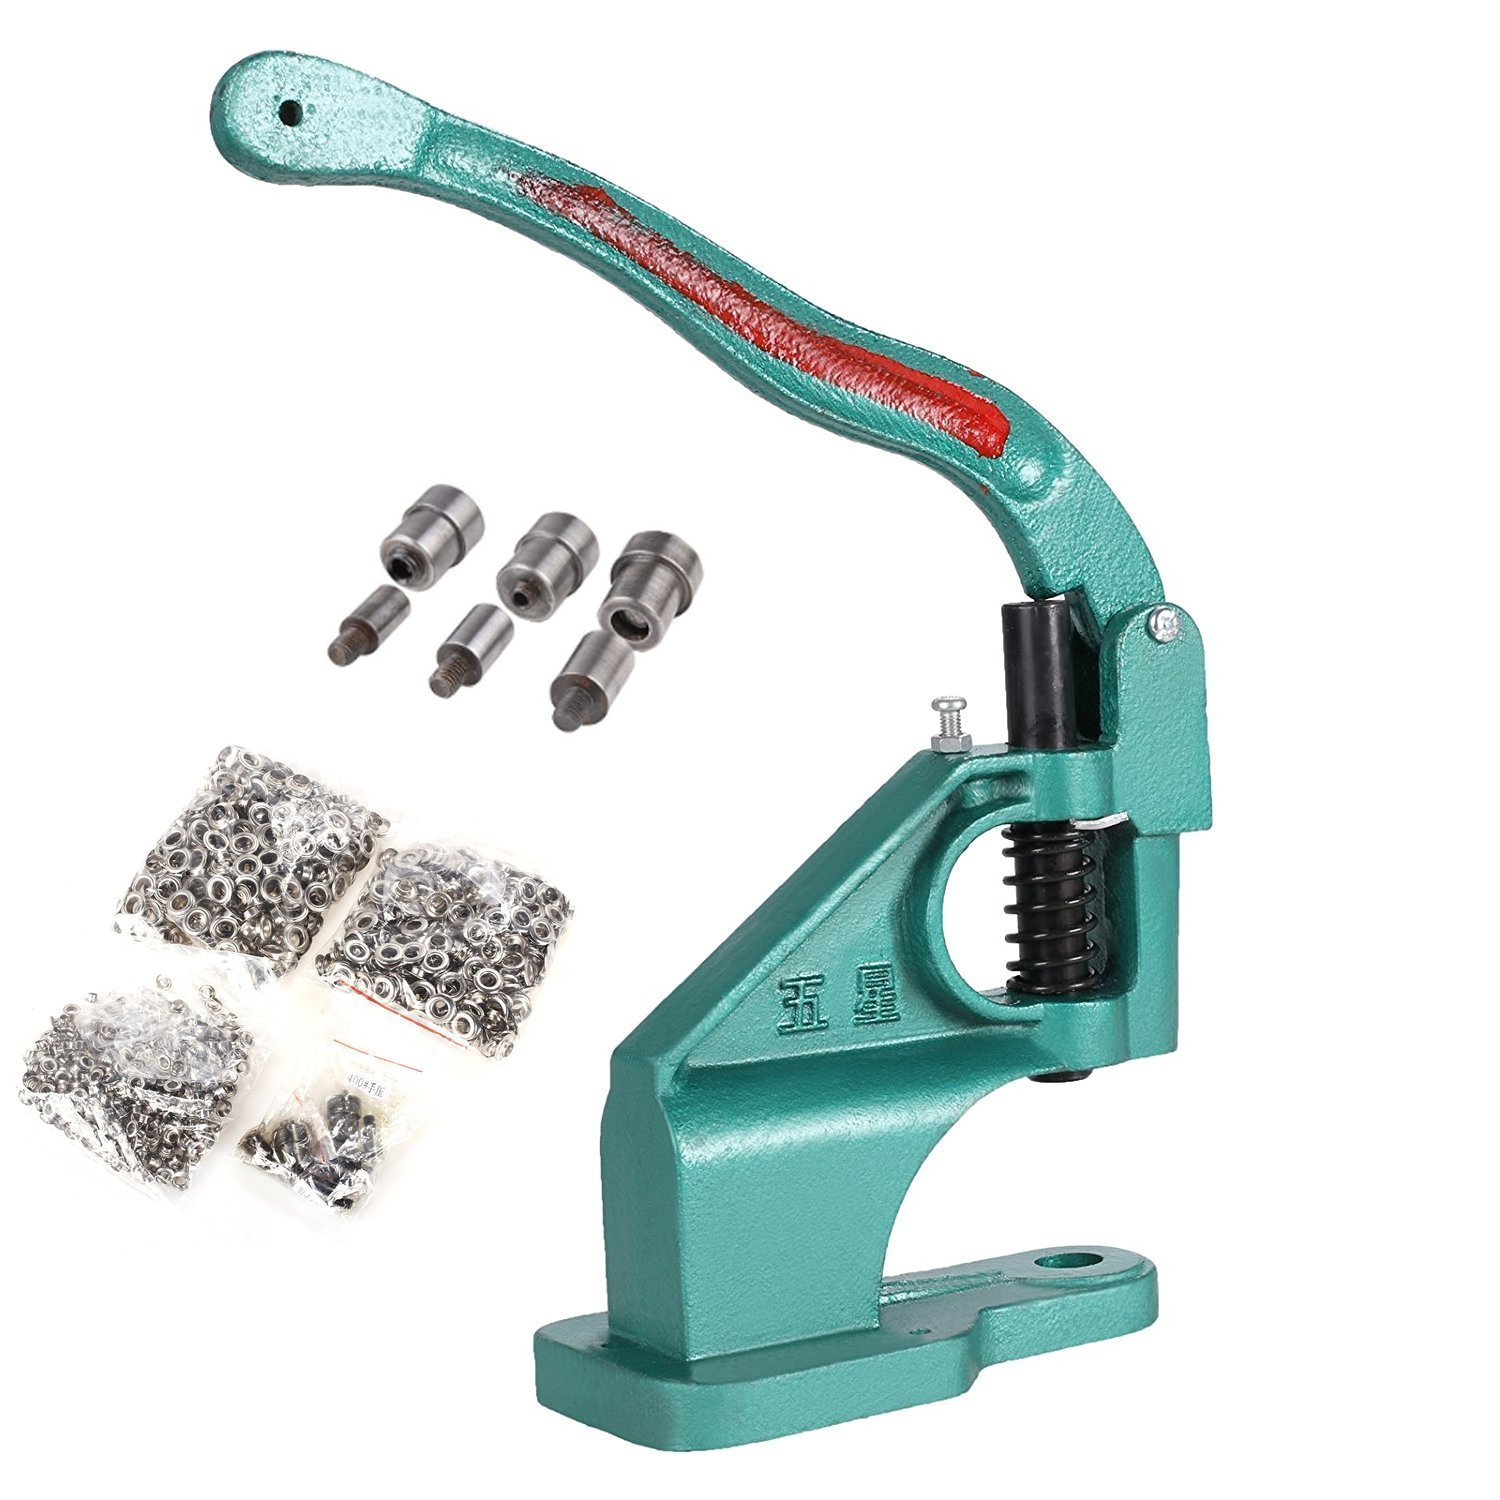 Hand Press Grommet Machine 3 Die (#0#2#4) with 900 Grommets Eyelet Tool Kit by Rampmu